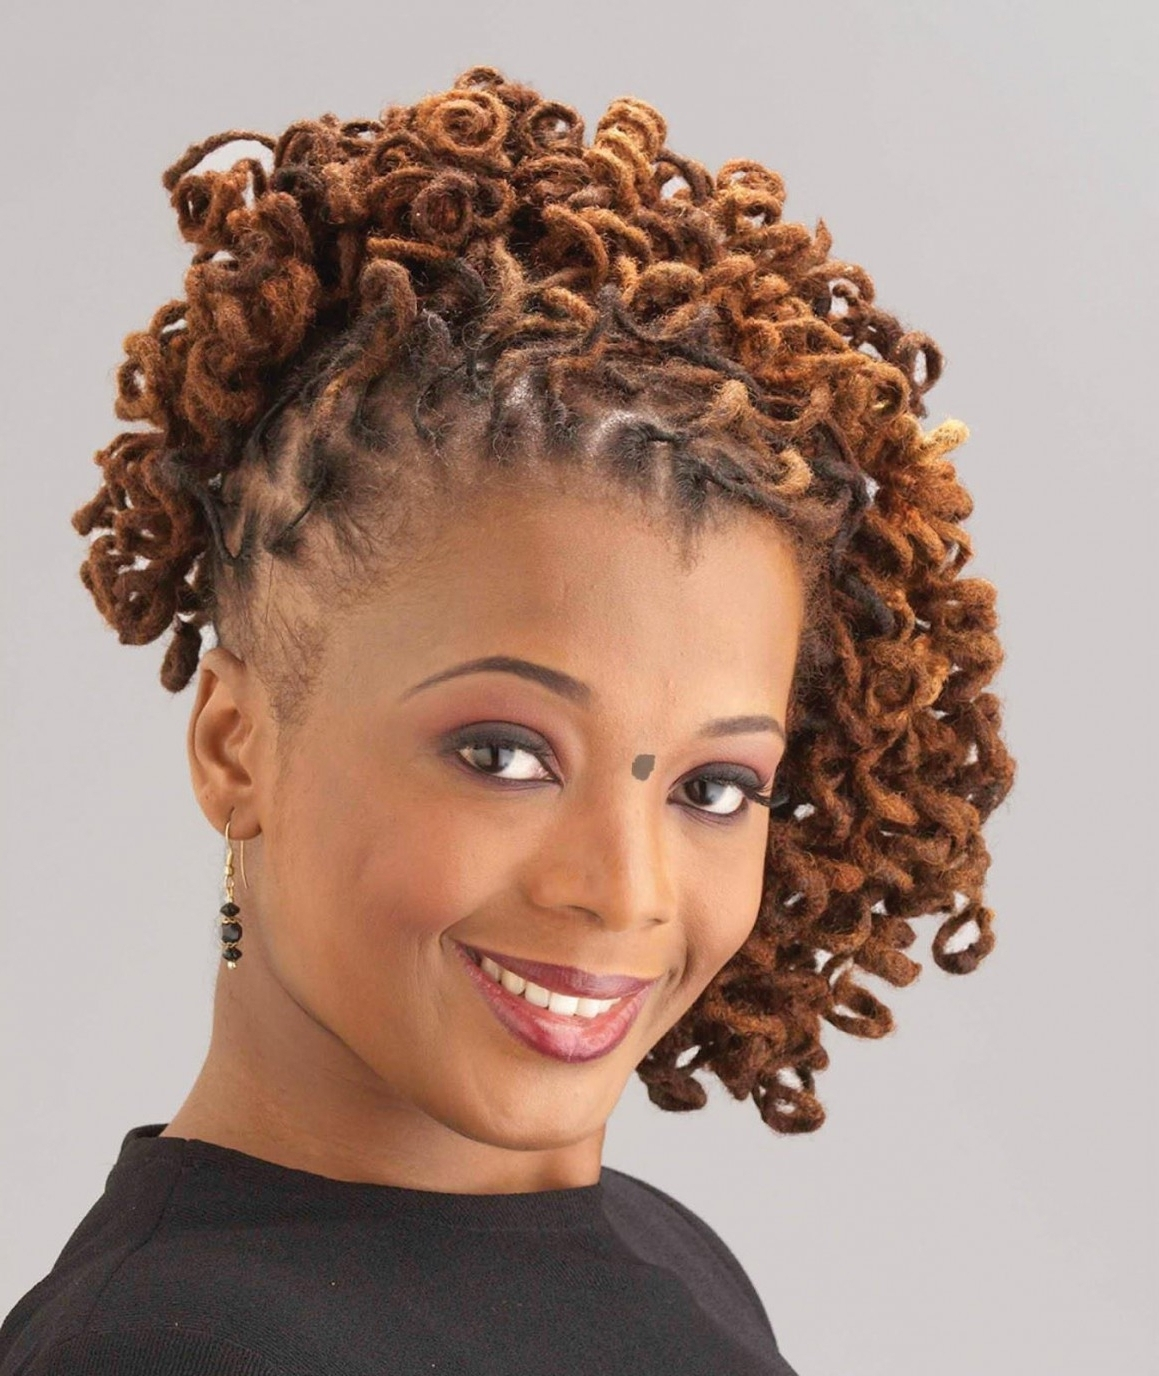 Hairstyles For Short Naturally Curly Hair 2017 Within Natural Curly Pertaining To Naturally Curly Hair Updo Hairstyles (View 5 of 15)